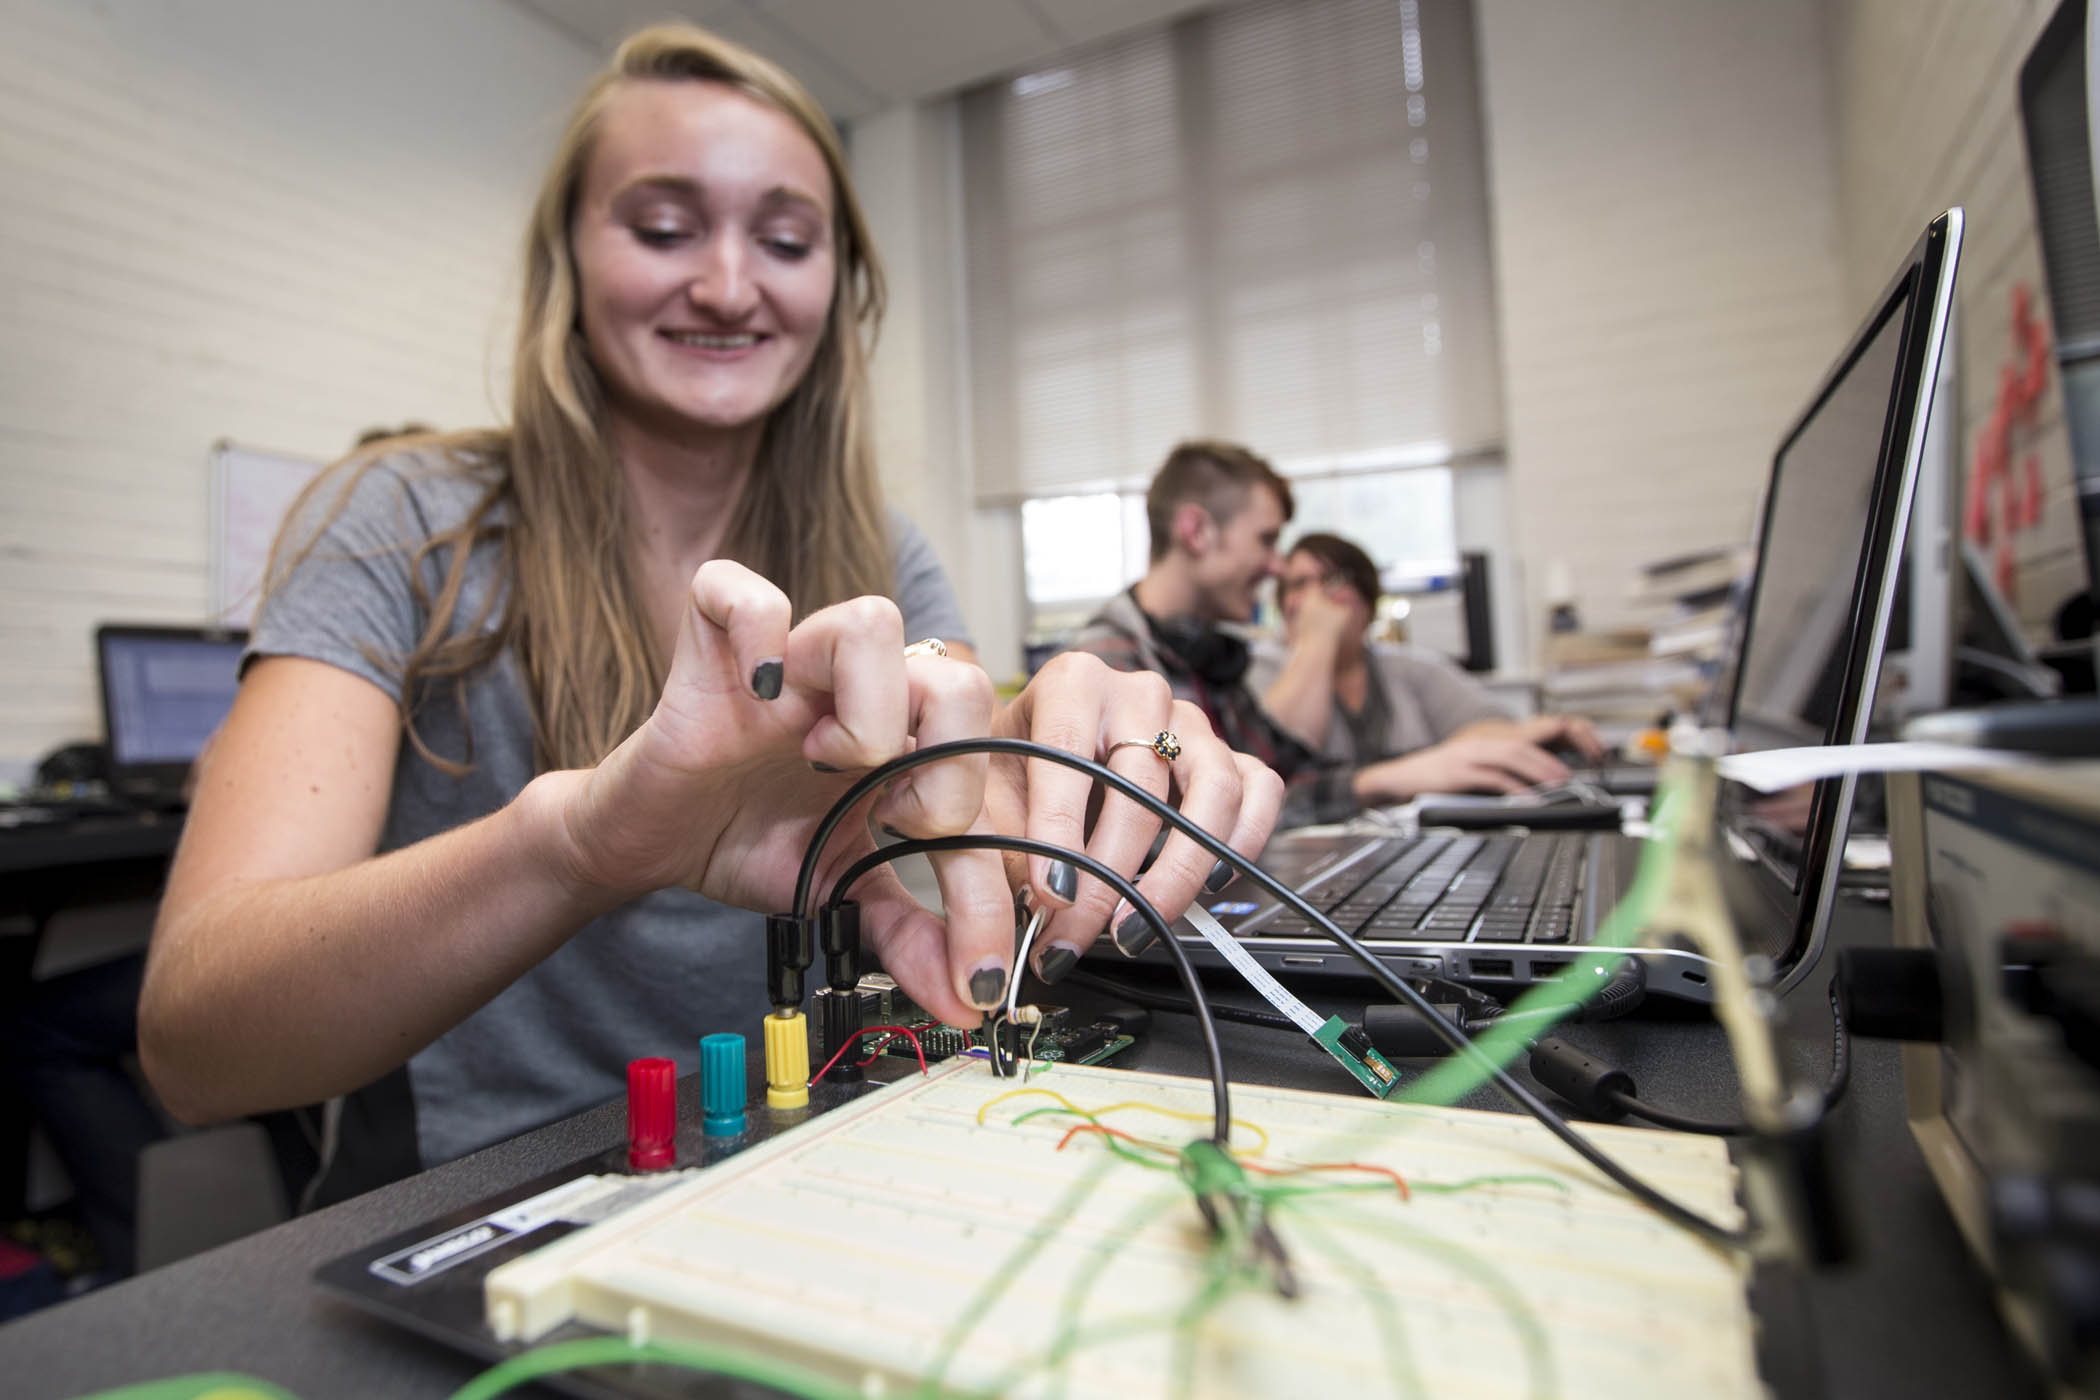 Student checks electrical connections on instruments